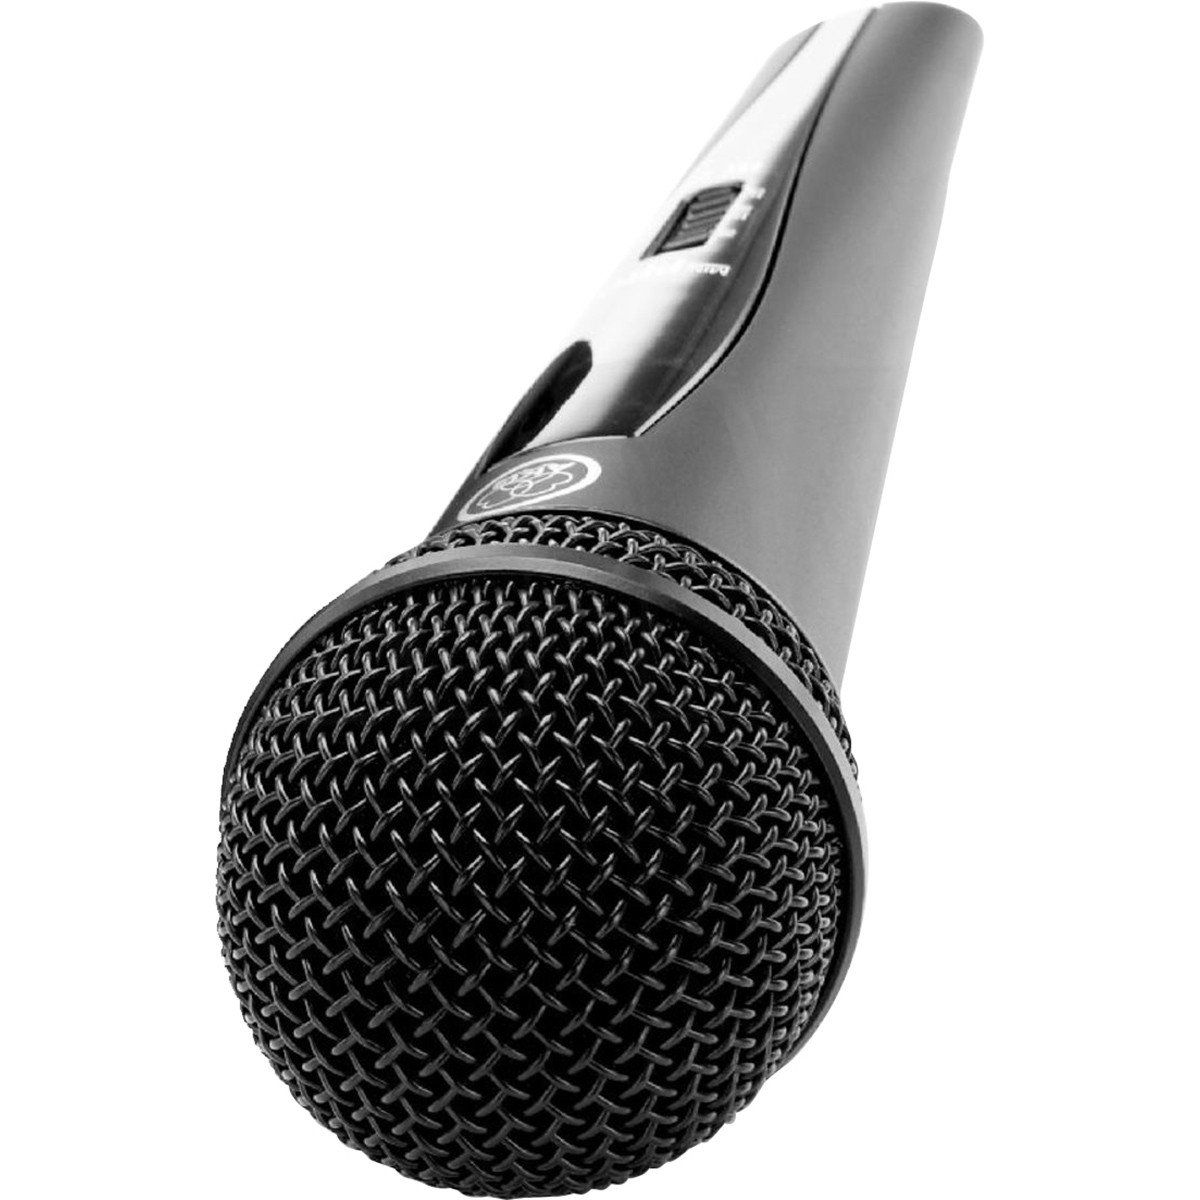 Akg WMS40 Mini Dual Vocal Instrumental Microfone Sem Fio Akg WMS-40 Mini